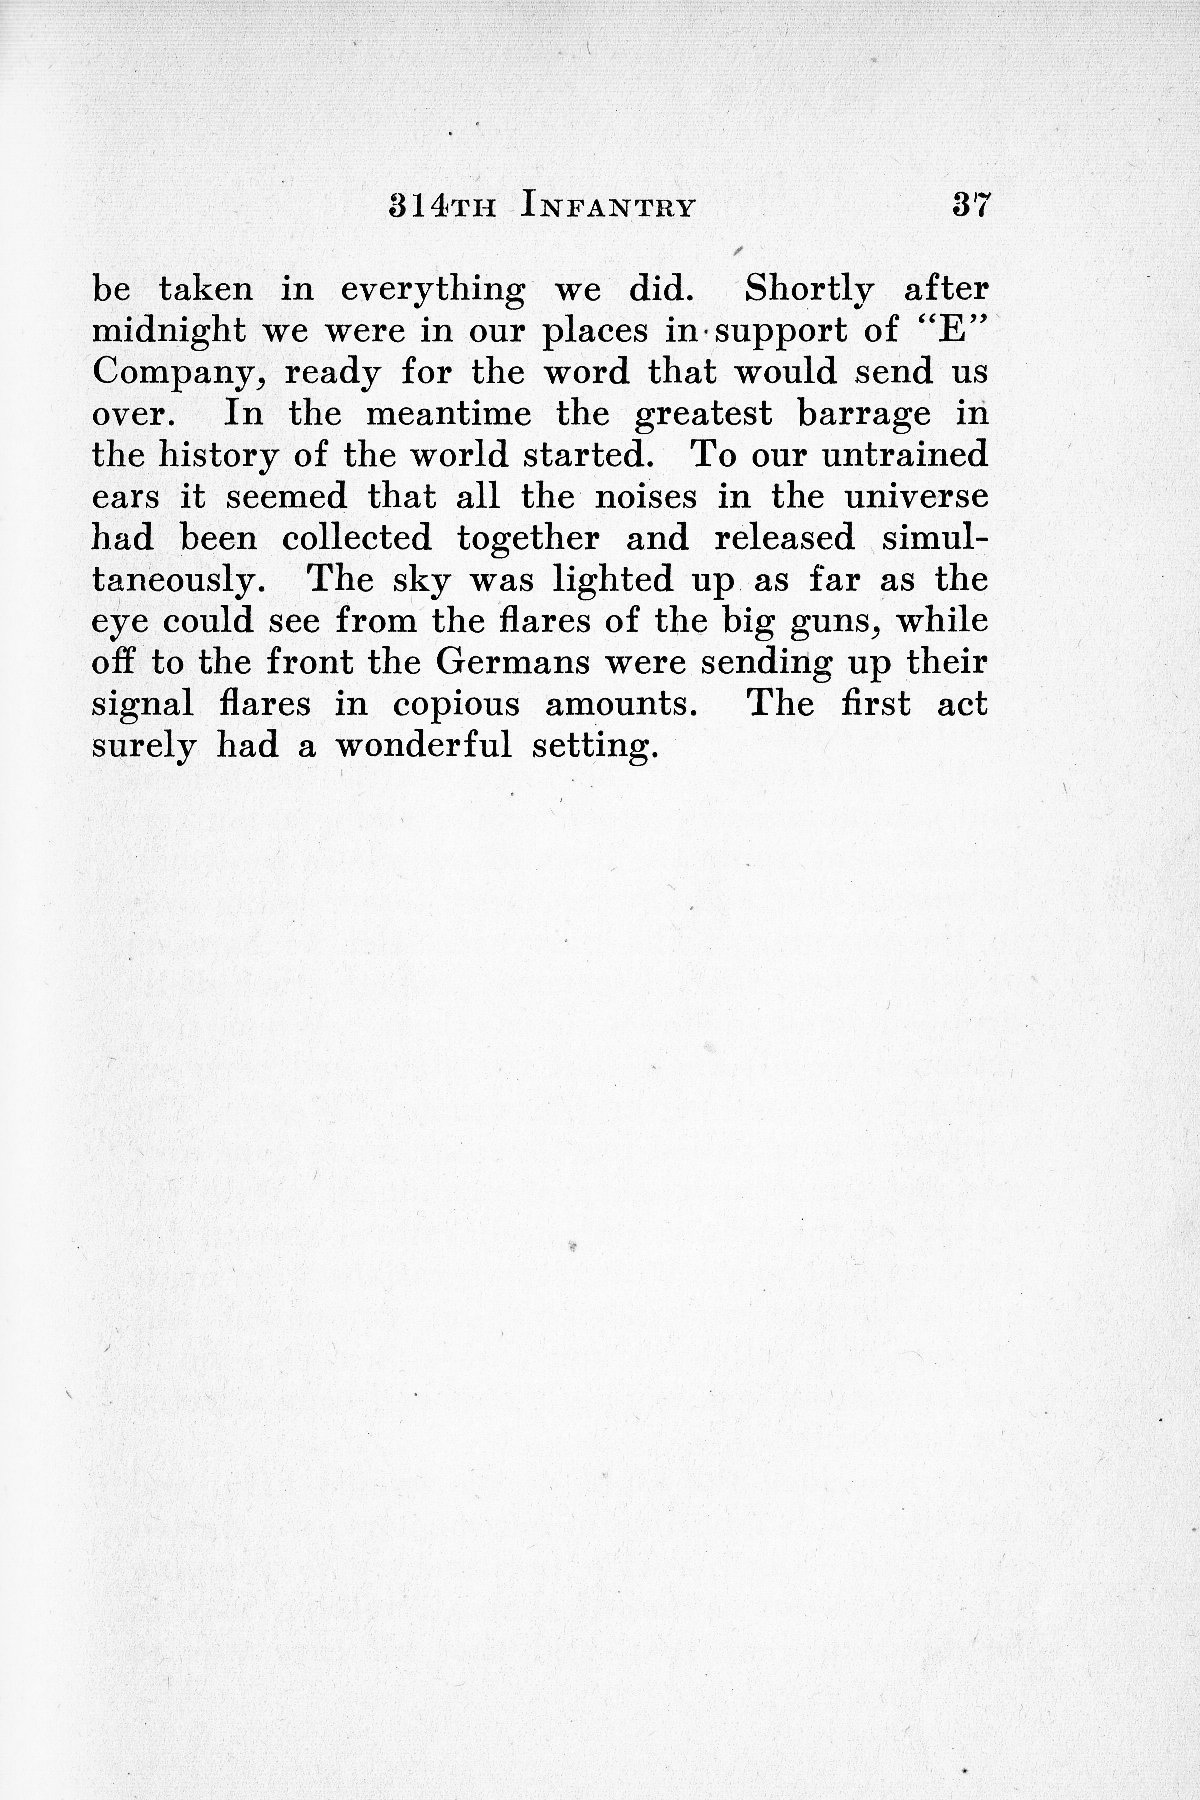 History of Company G 314th Infanty - Page 037